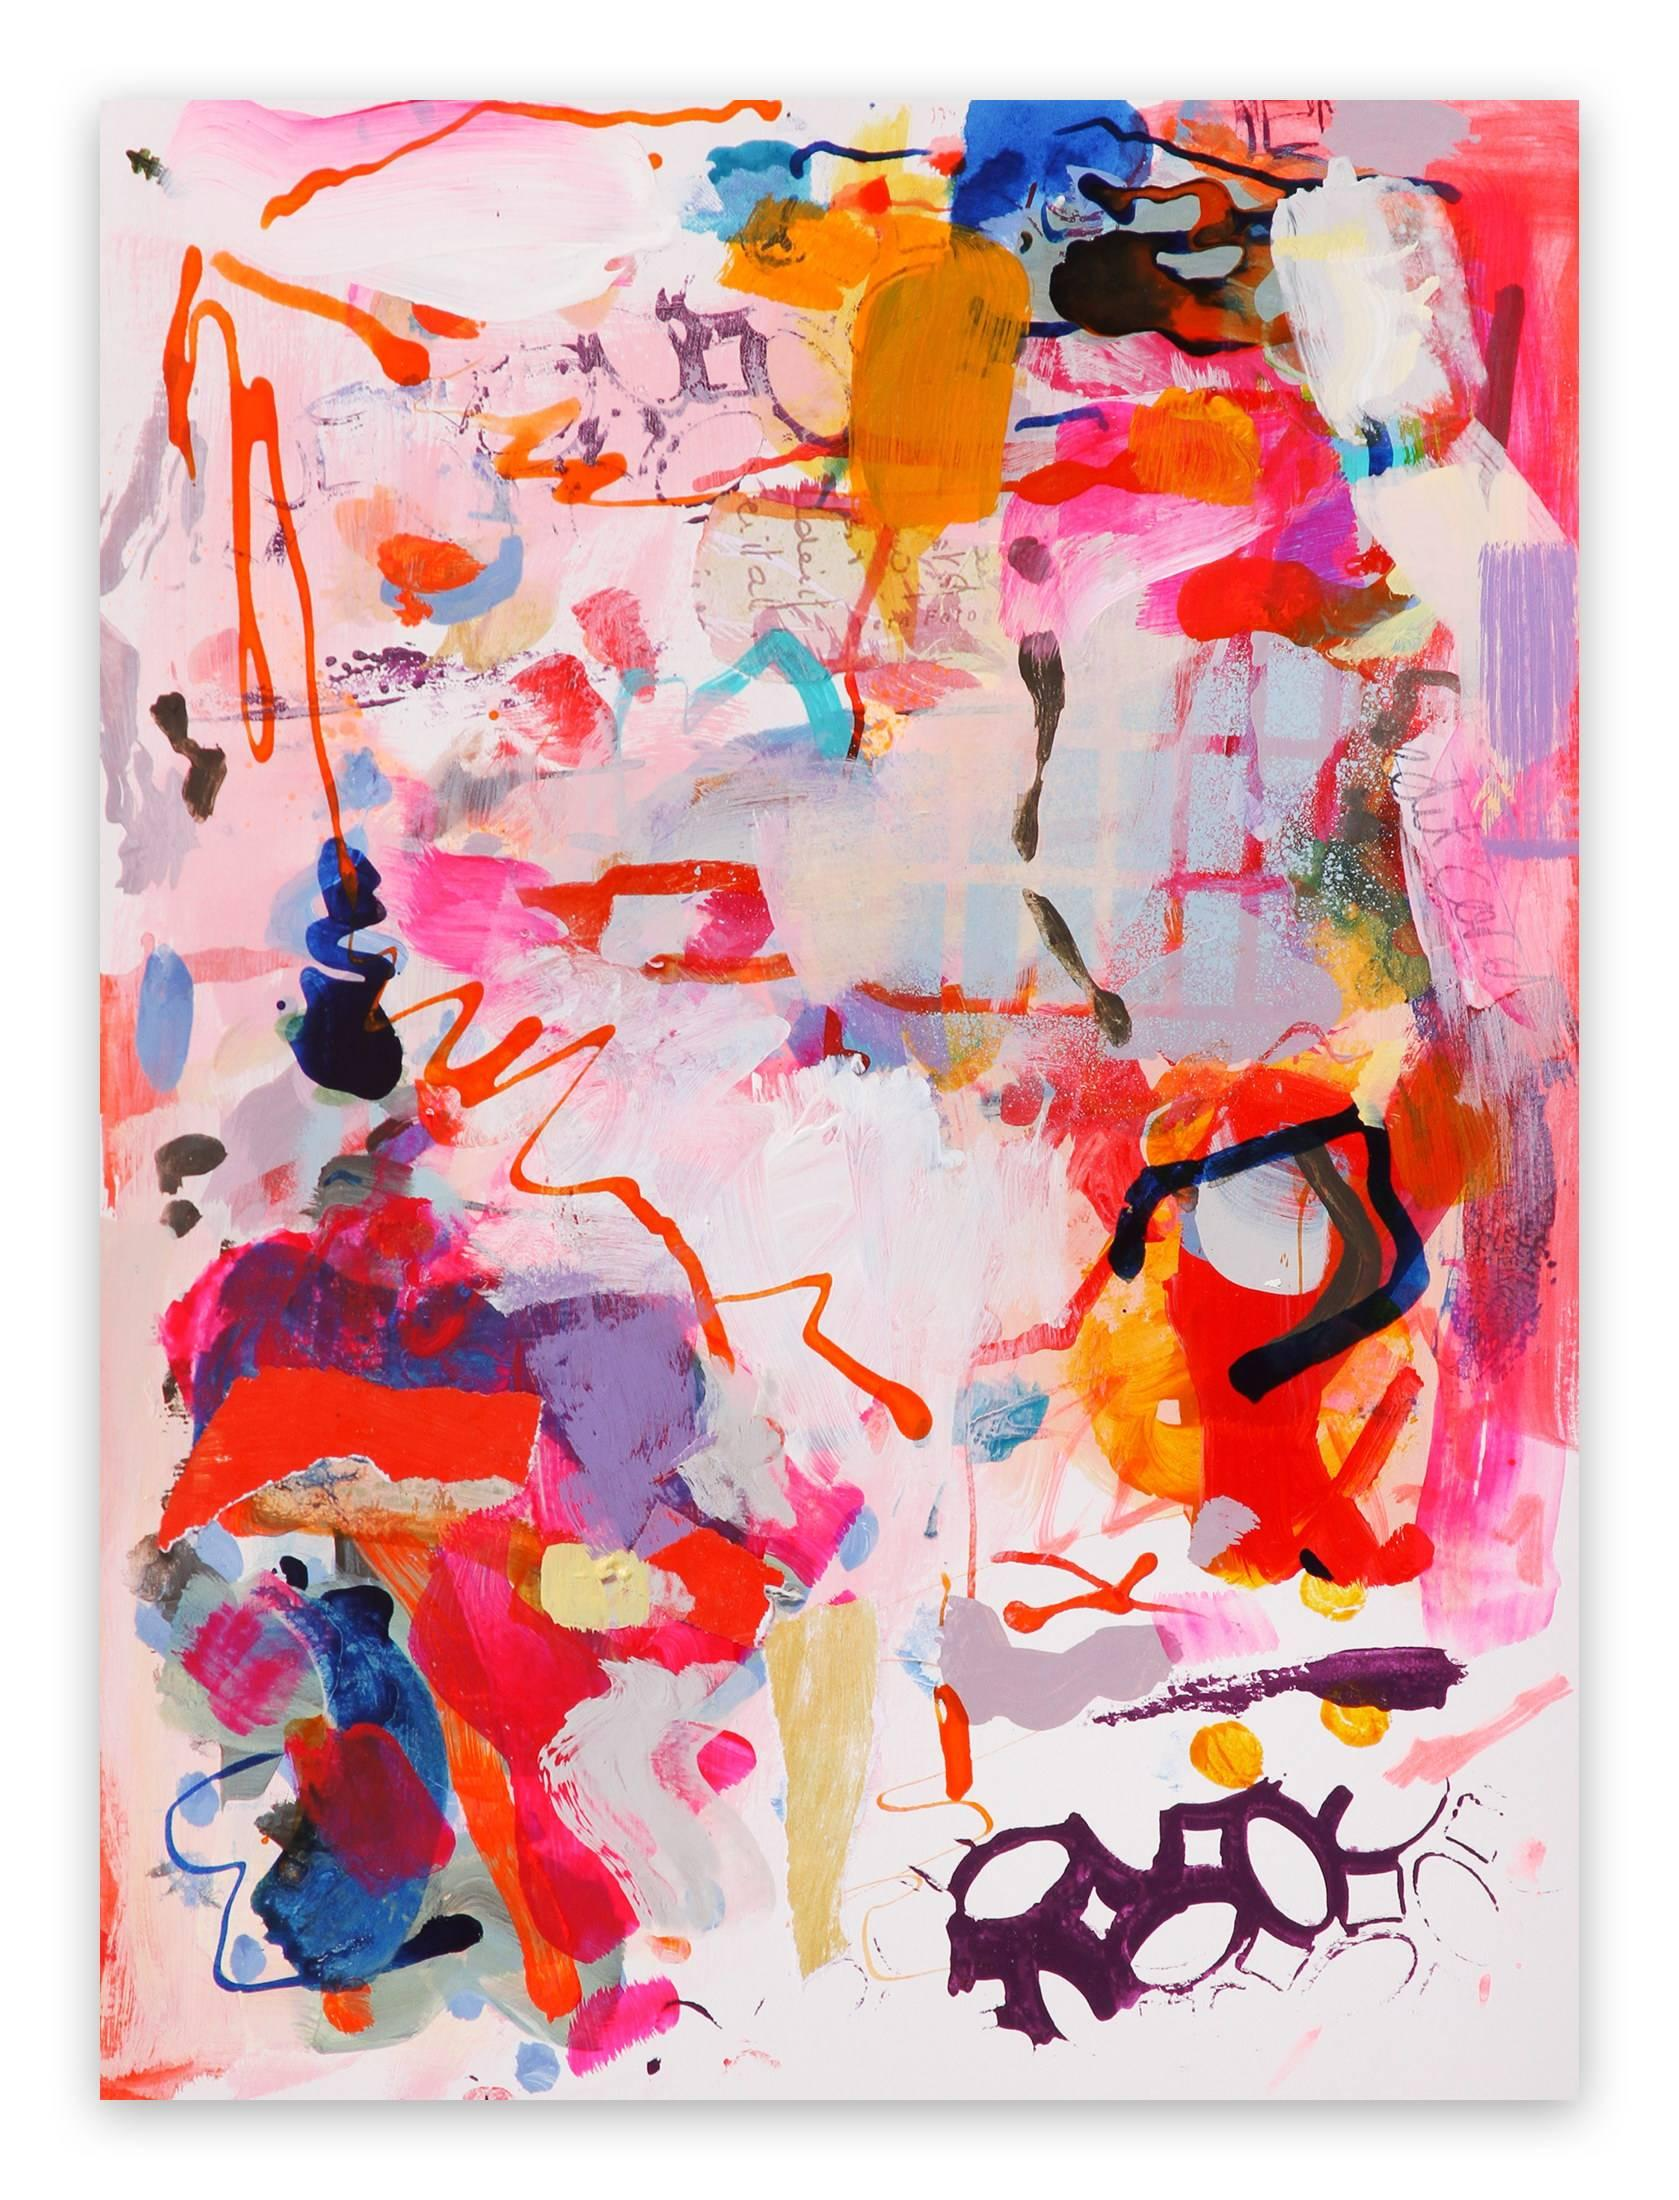 Skeletal Structure (Abstract Expressionism painting)